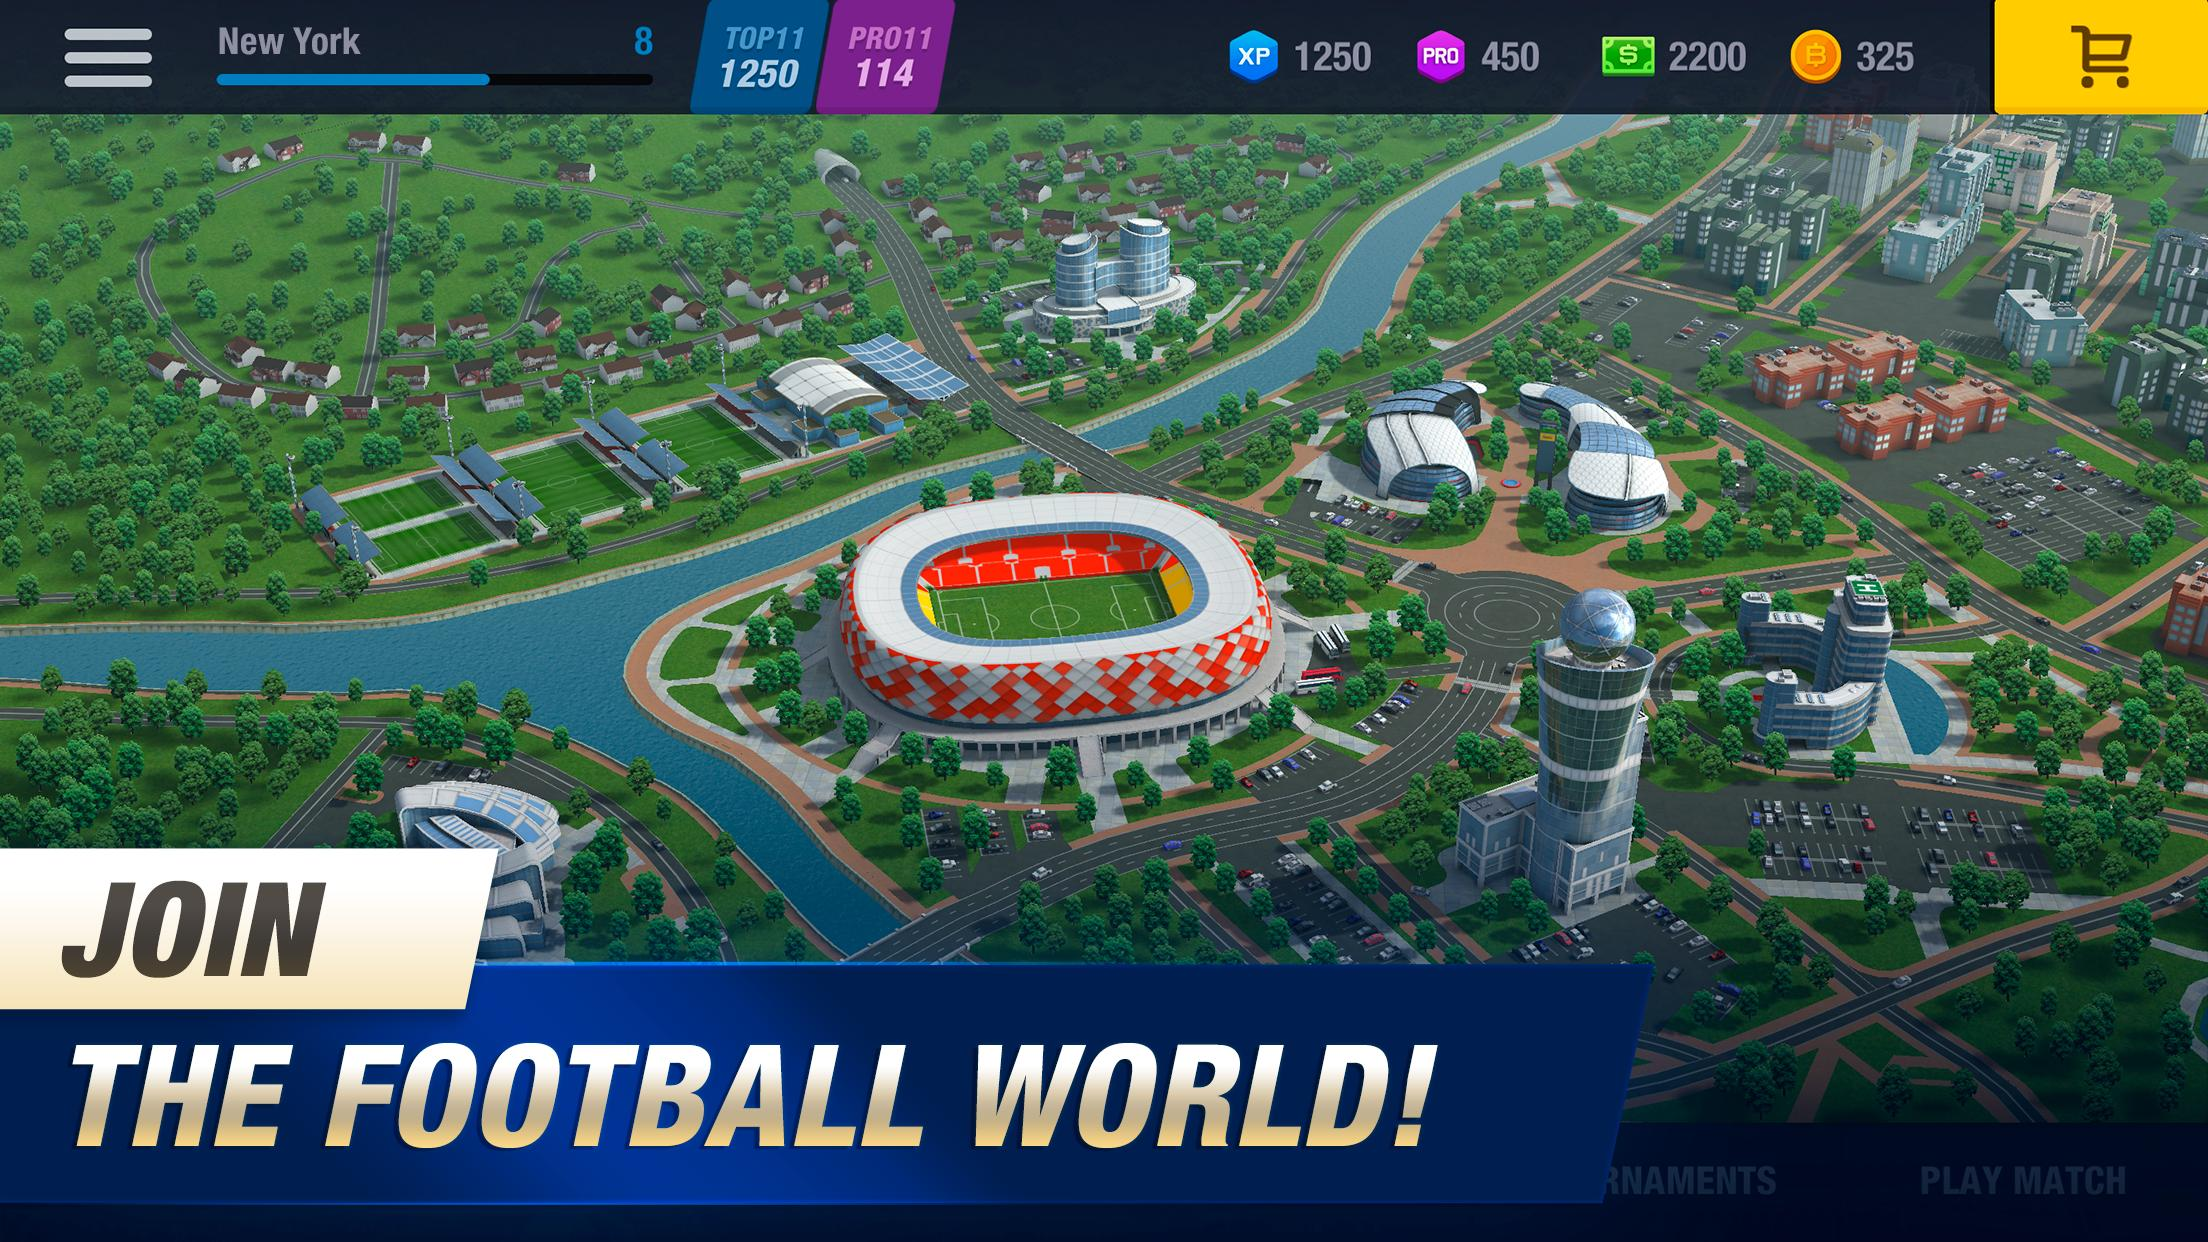 11x11 for Android - APK Download